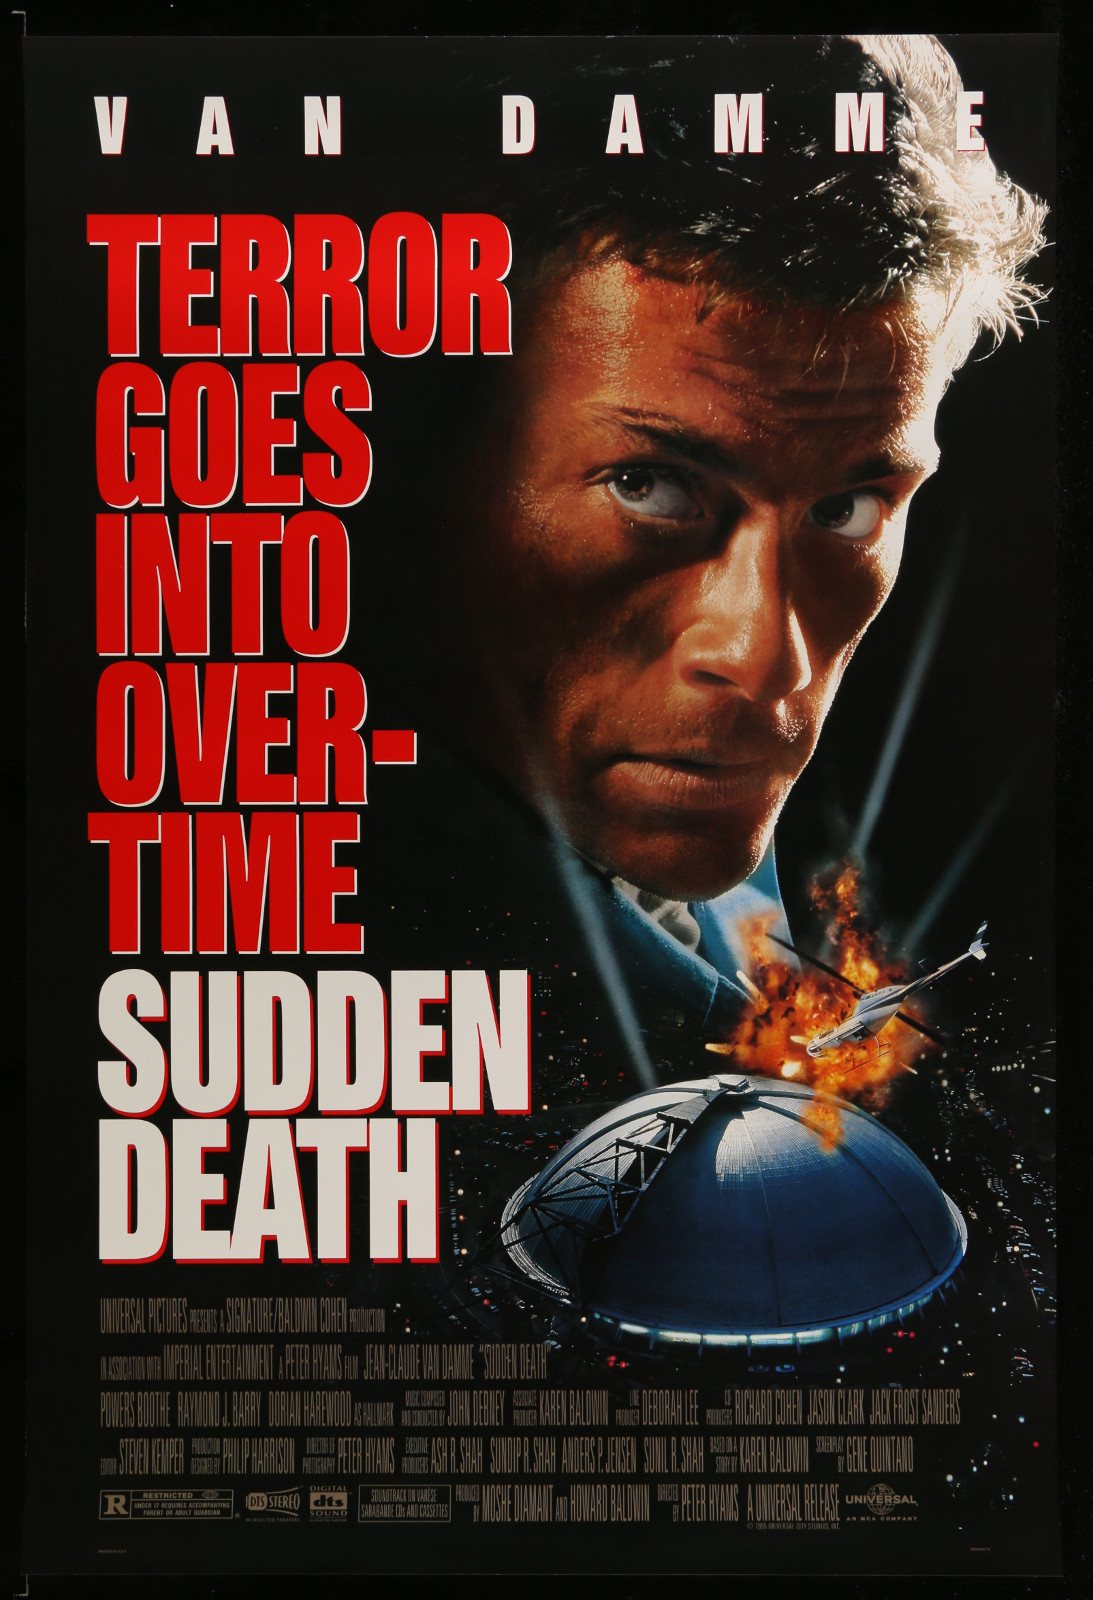 Sudden Death 2A355 A Part Of A Lot 31 Unfolded Mostly Double-Sided 27X40 One-Sheets '90S Cool Movie Images!